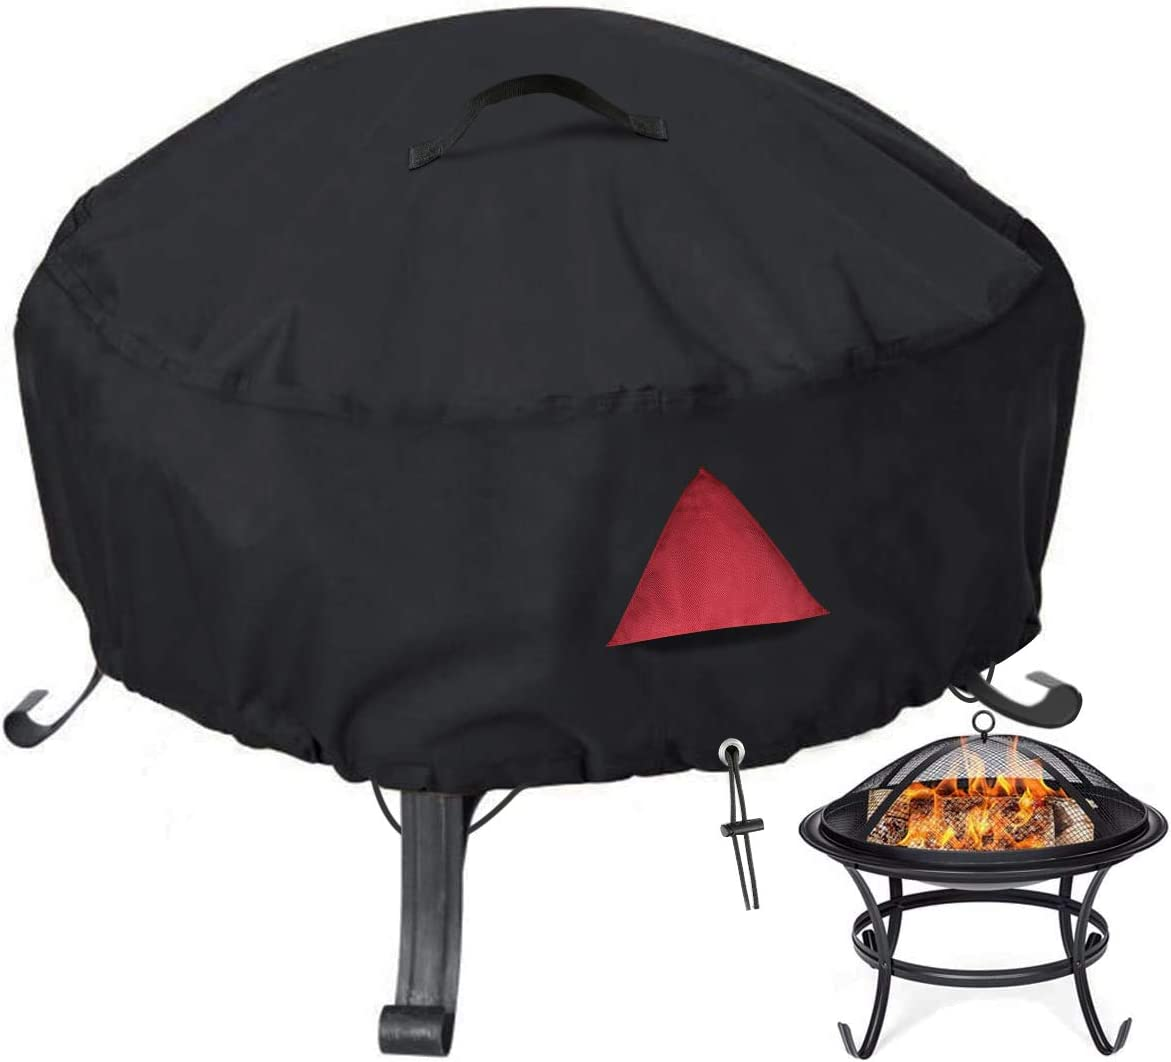 Outdoor Round Fire Finally popular brand Pit Cover sale with Coating and Waterproof Air PVC